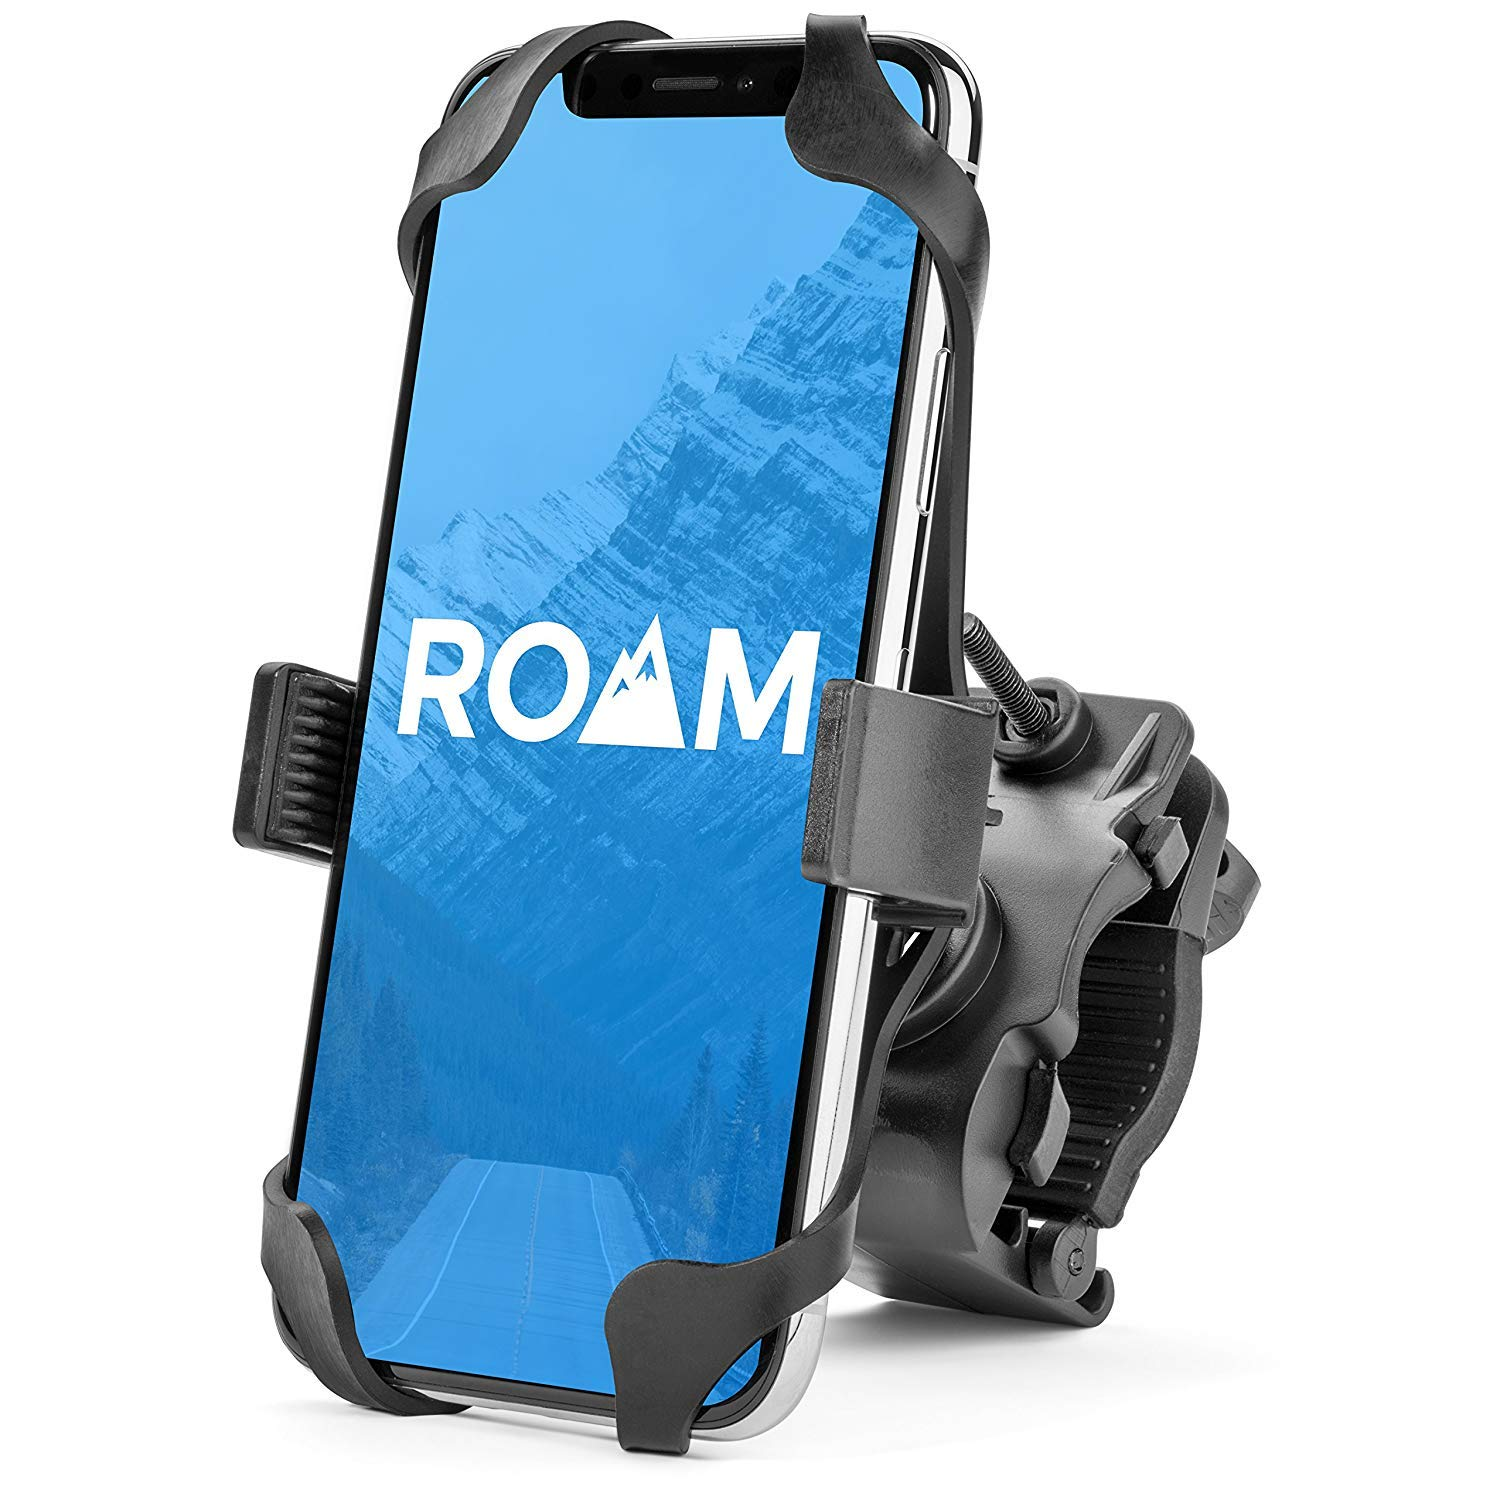 Roam Universal Premium Motorcycle Phone Mount